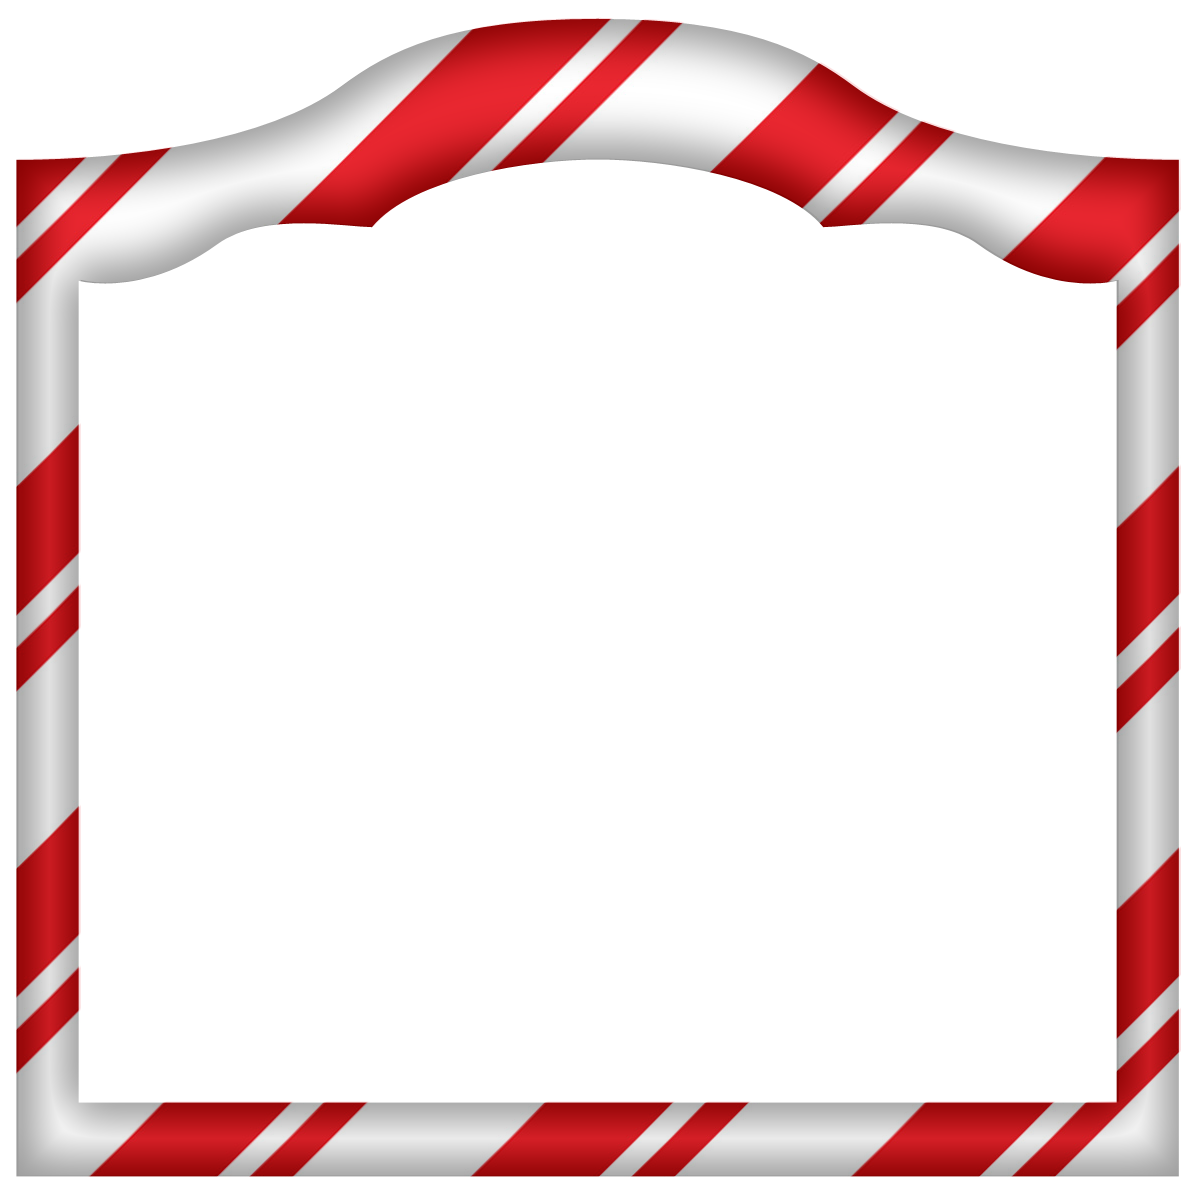 Free christmas picture border. Flag clipart frame